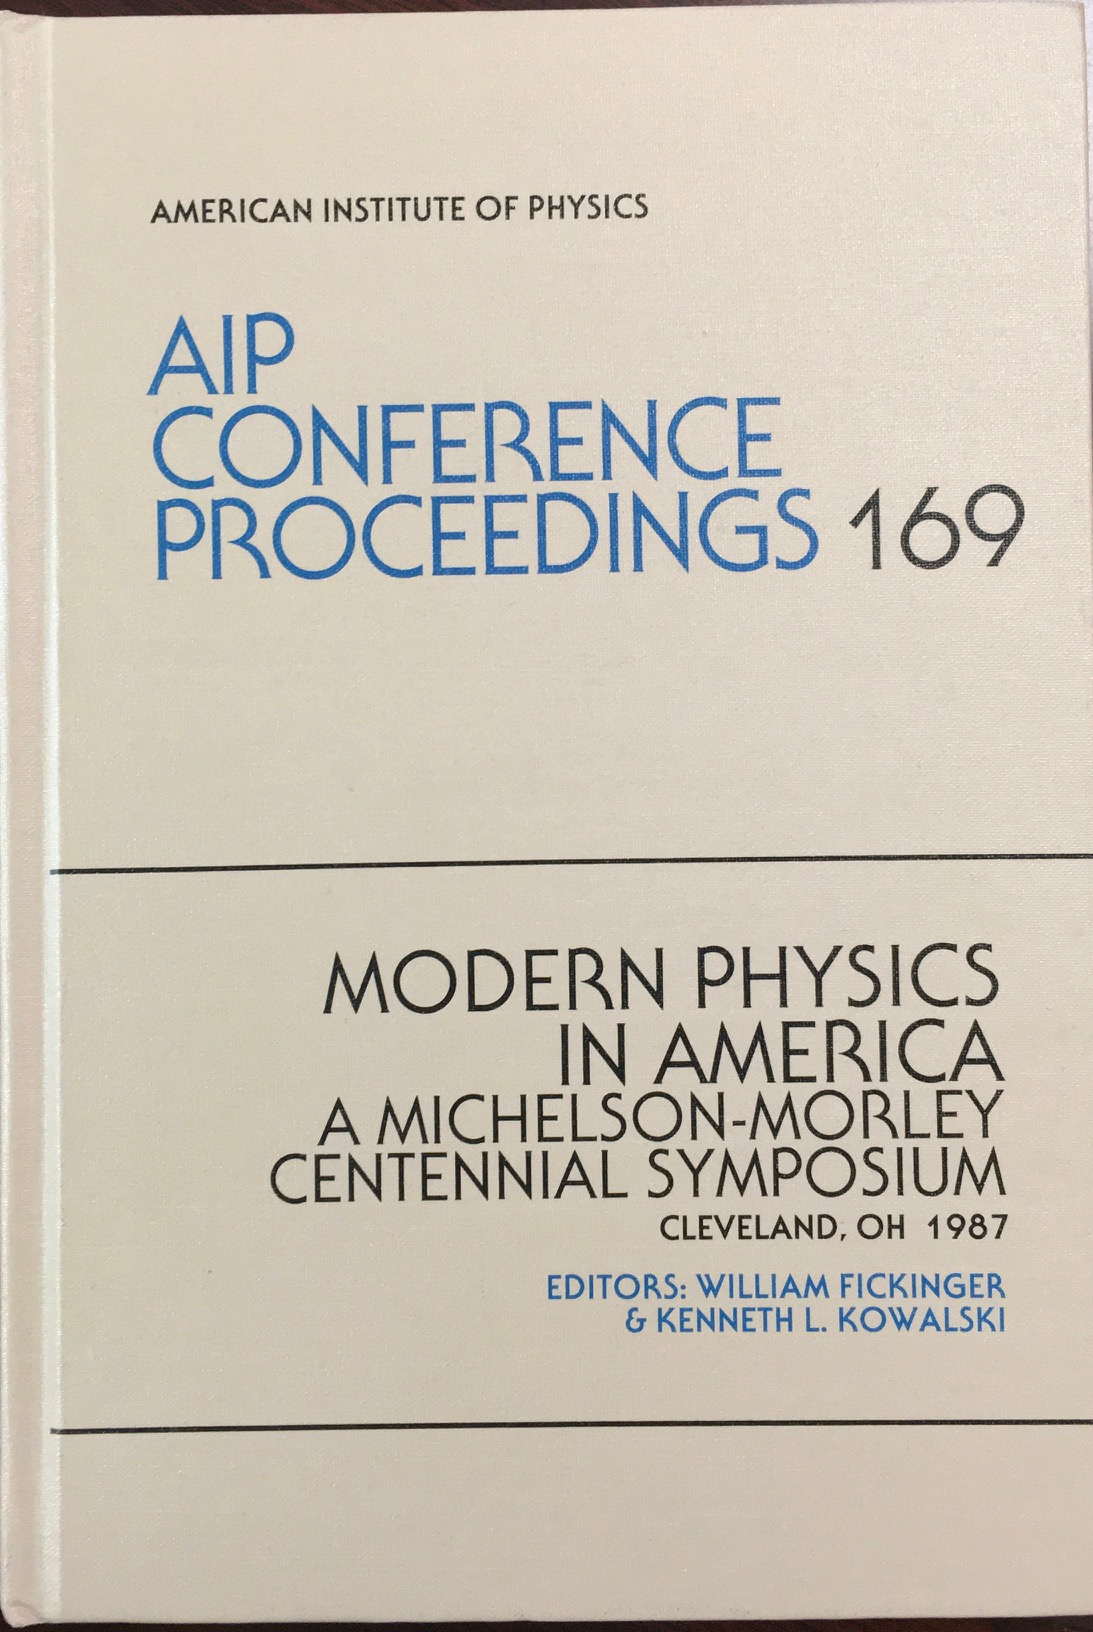 Image for Modern Physics in America: A Michelson-Morley Centennial Symosium: Cleveland, OH 1987 (AIP Conference Proceedings)